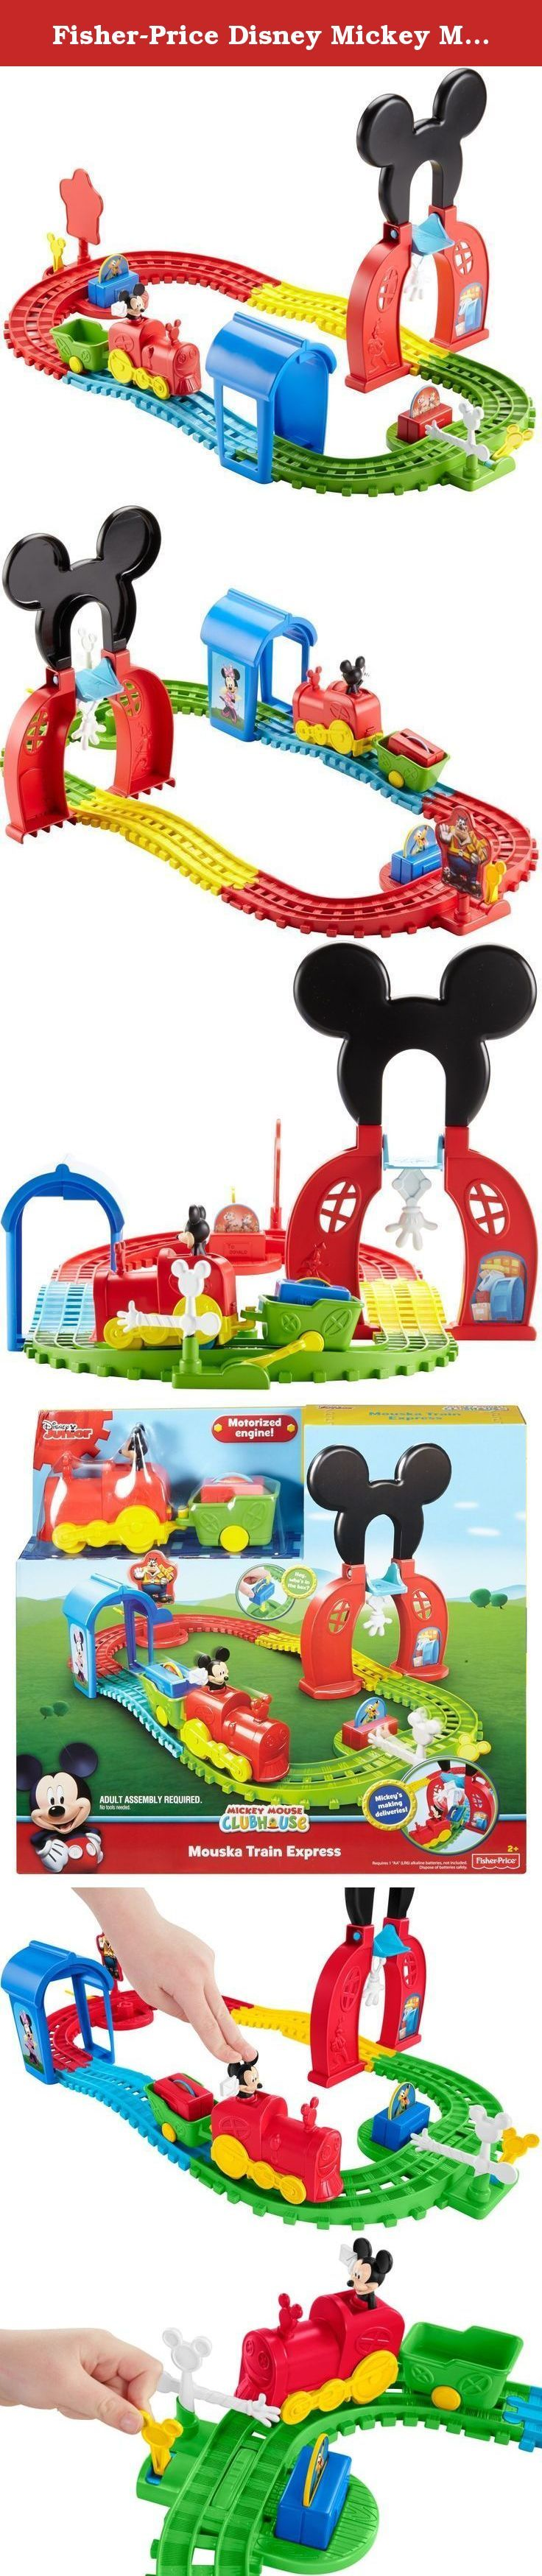 Fisher-Price Disney Mickey Mouse Clubhouse Mouska Train Express Playset. It's time for Mickey Mouse to climb aboard his motorized railway and make his deliveries to the Disney Mickey Mouse Clubhouse gang! Press Mickey's head to get his motorized engine started as he makes his way around his wacky track. As Mickey sets out on his adventure, he first has to get past pesky Pete, who is waiting around the bend. Then as he hits the handy hand, a package falls from the tower above and into the...